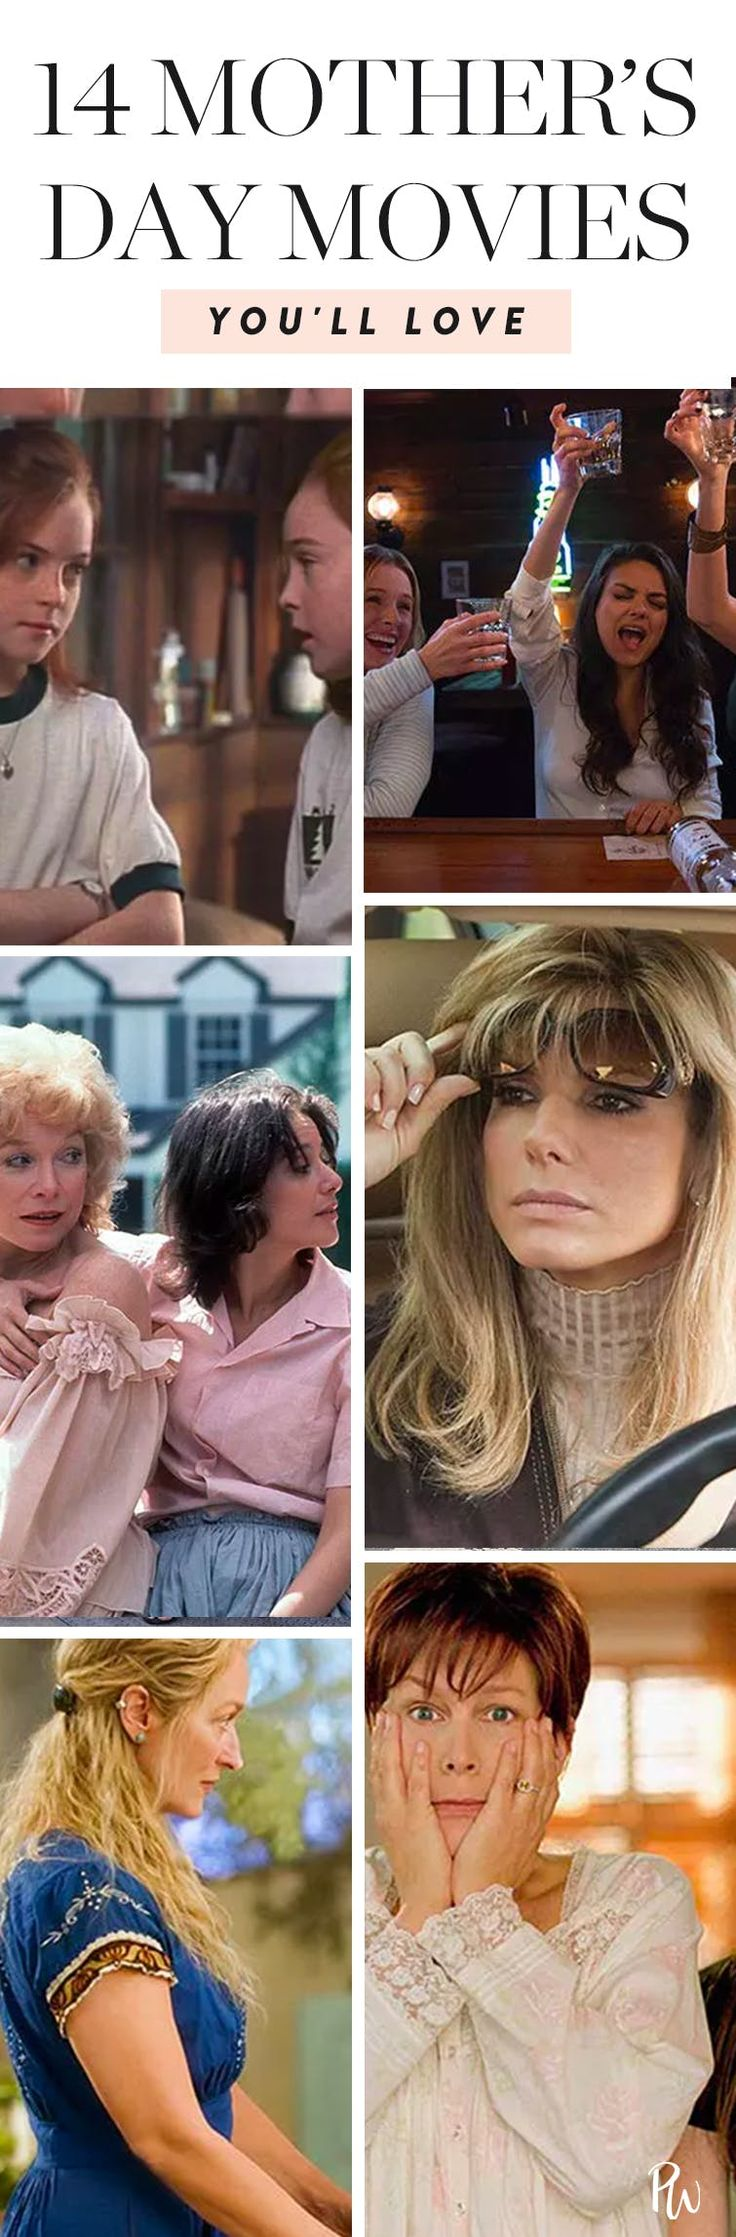 14 Movies to Watch with Mom This Mother's Day